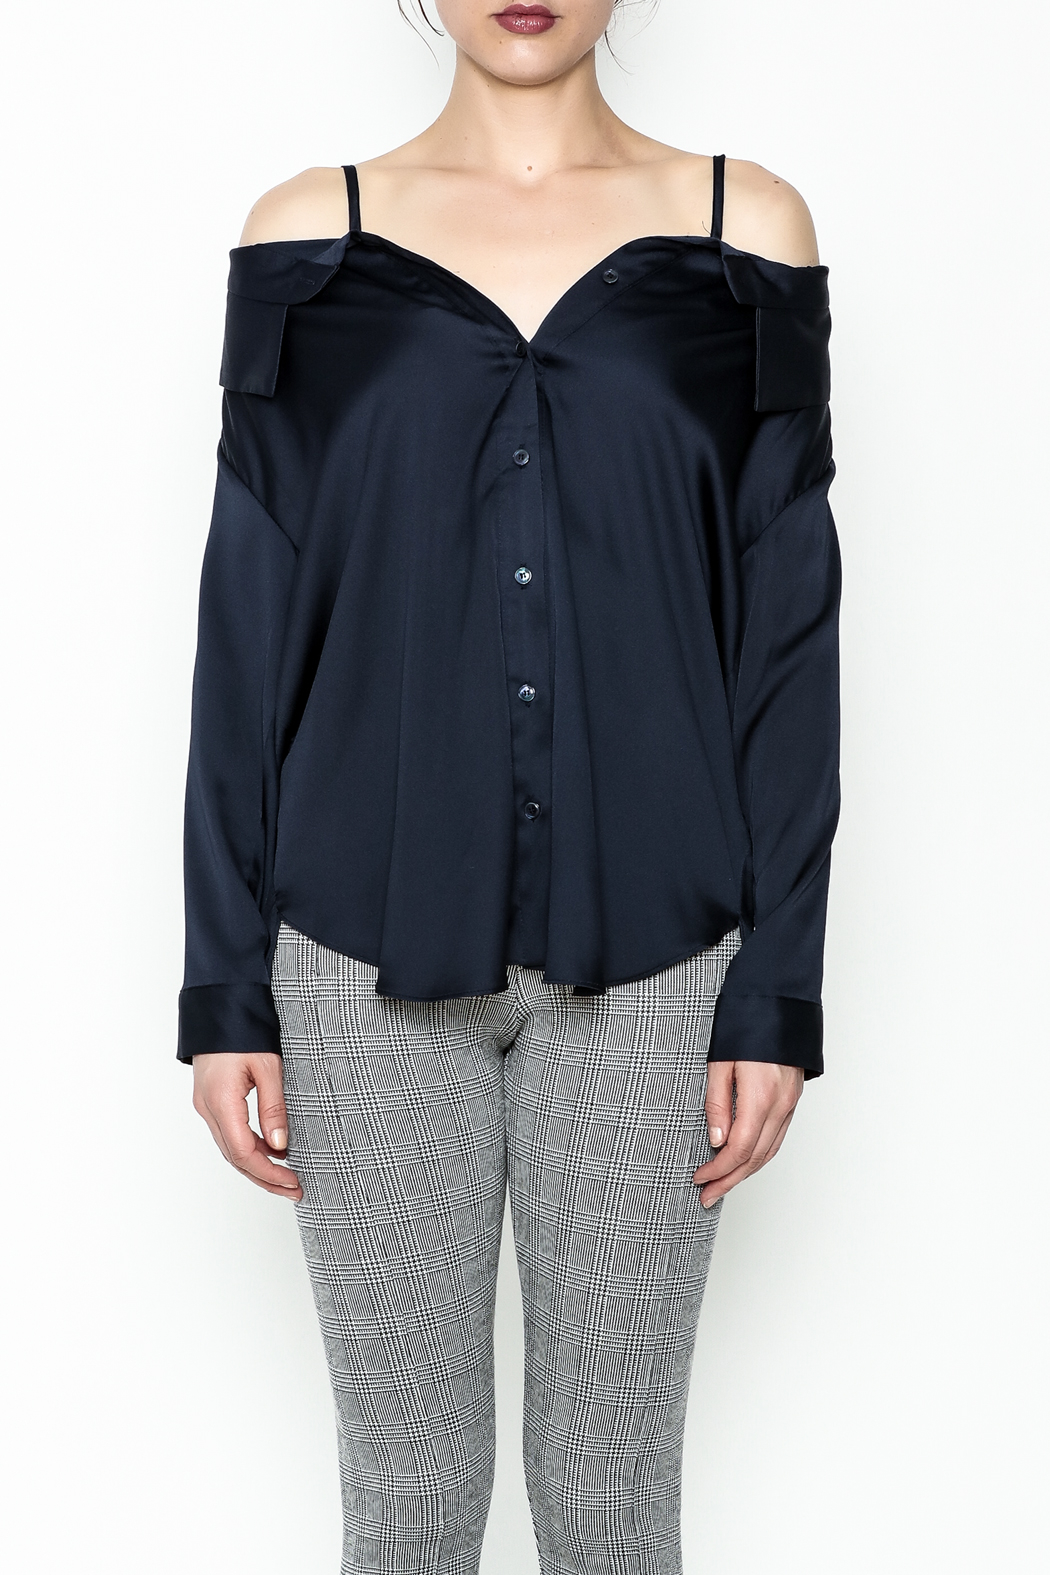 Pinkyotto Celine Button Up Top - Front Full Image